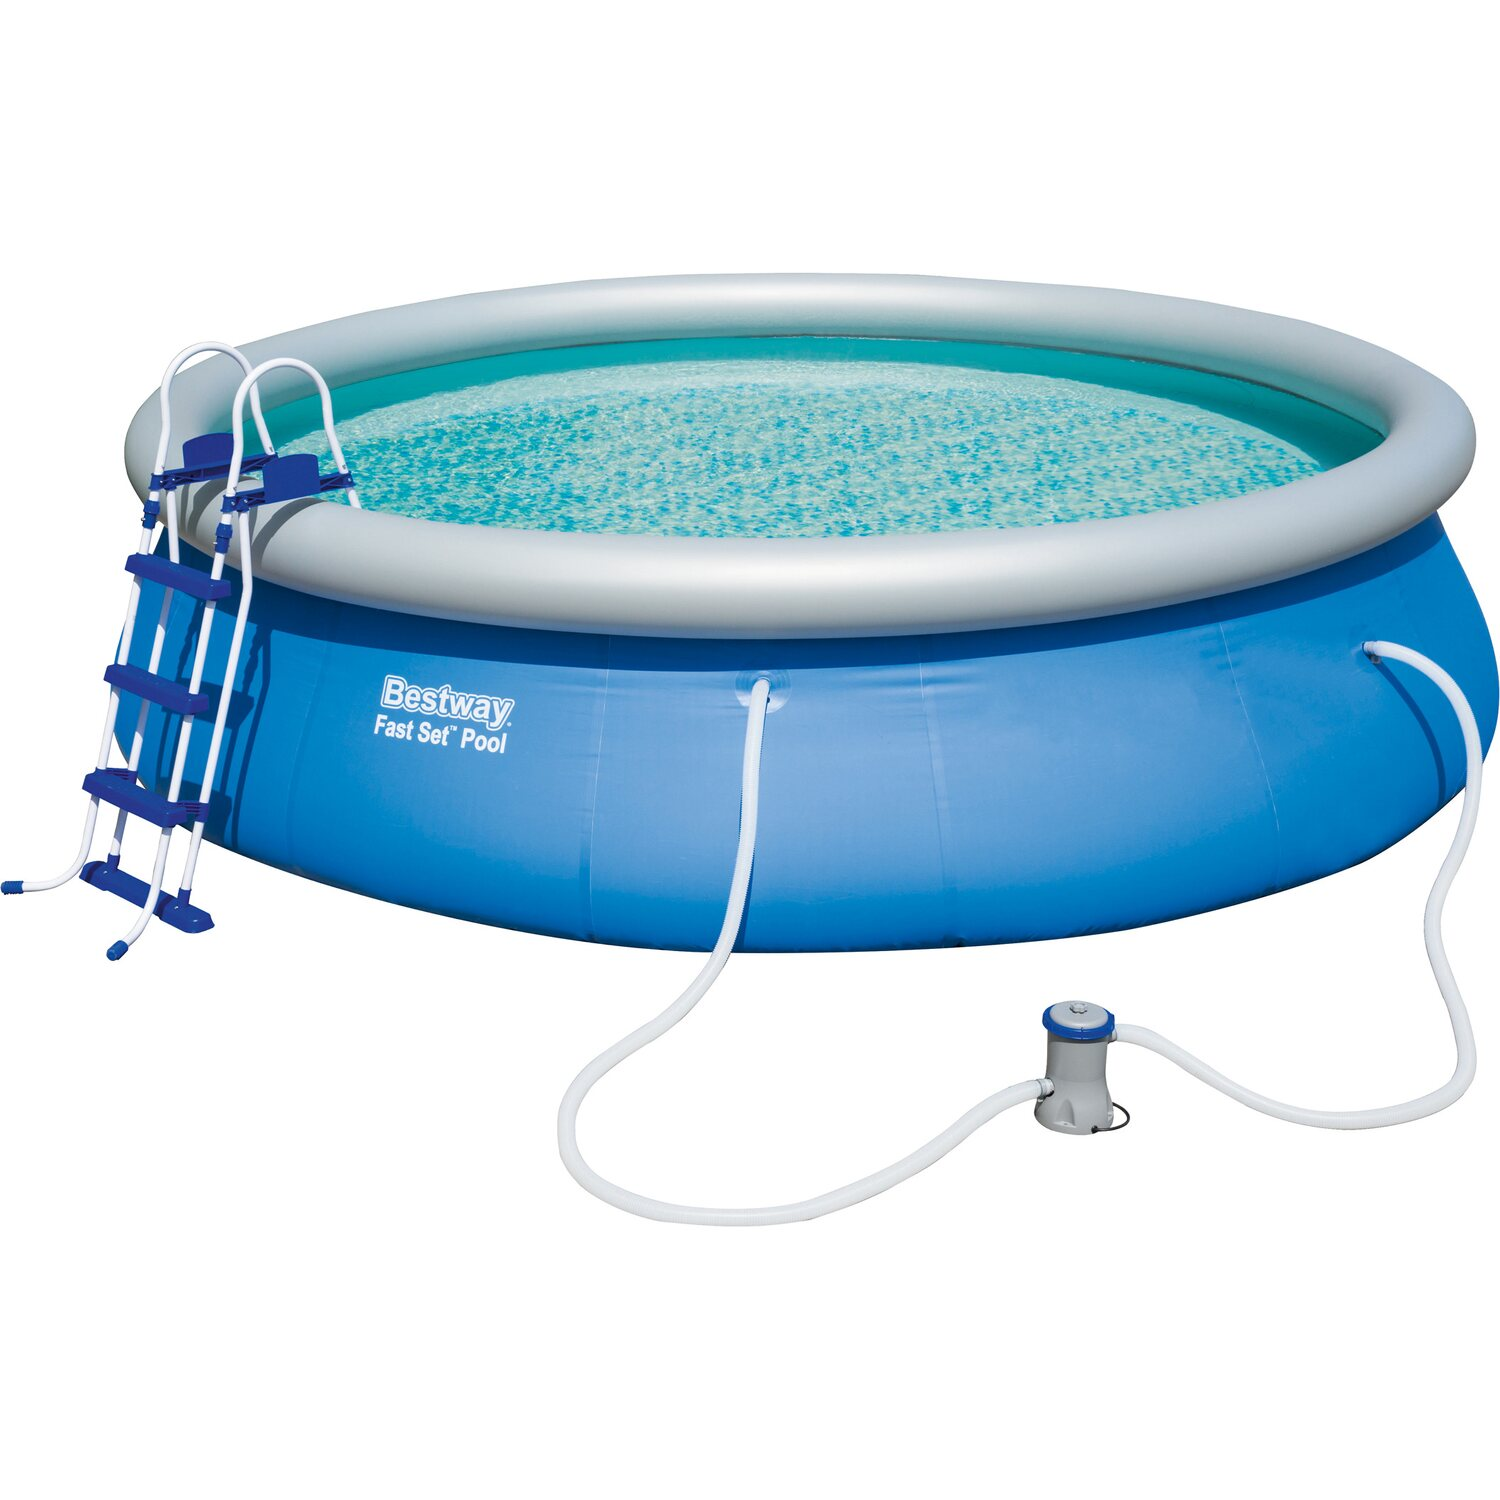 Bestway fast set pool 457 cm x 107 cm kaufen bei obi for Garten pool bestway